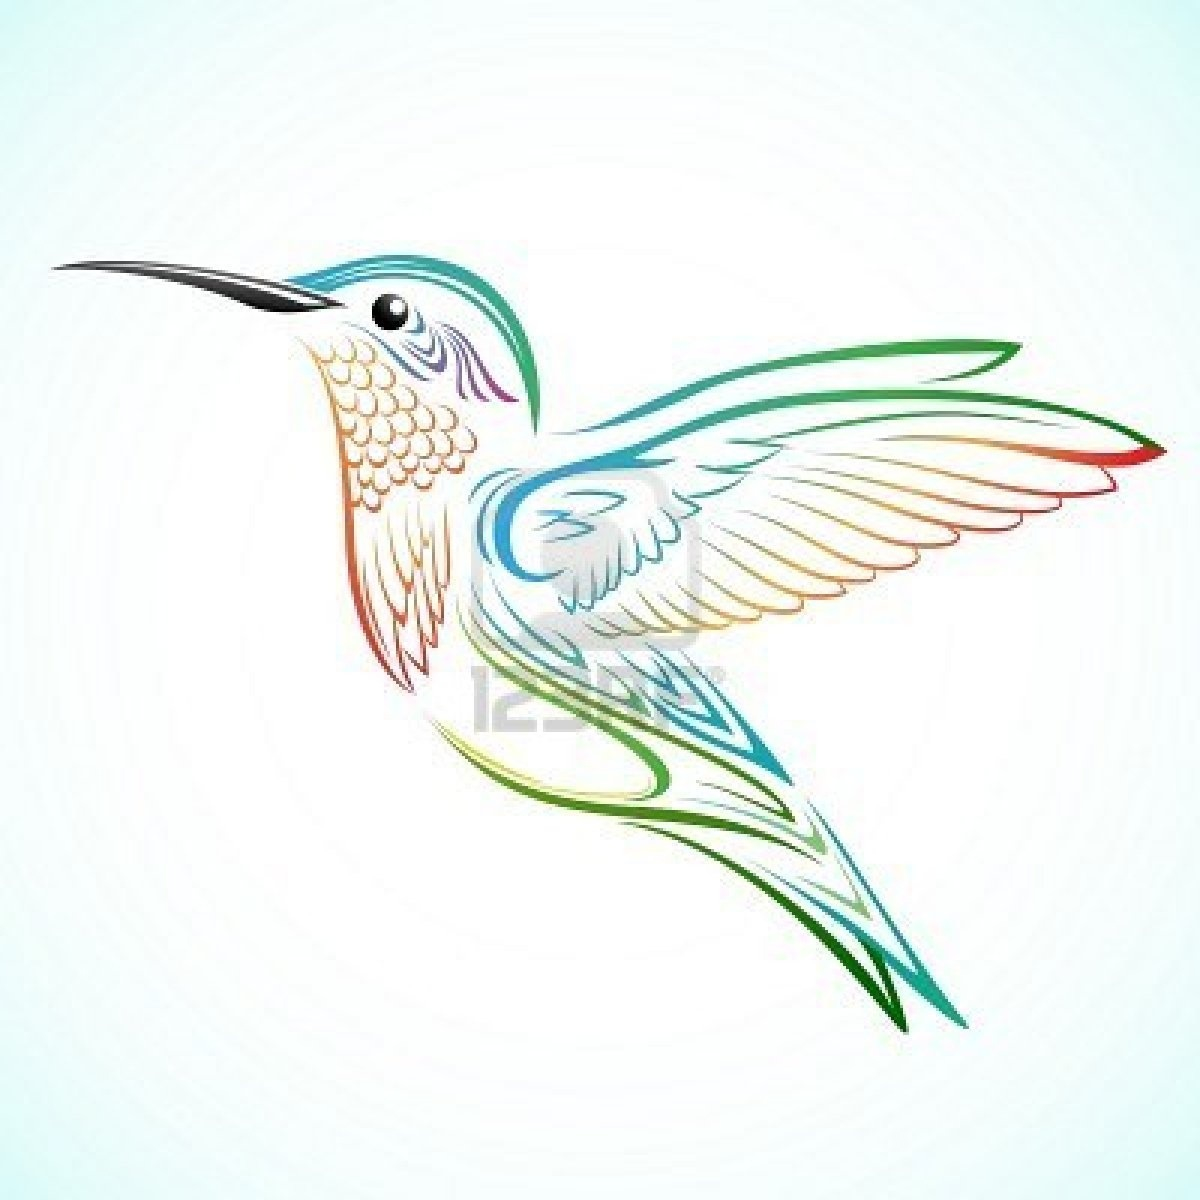 Hummingbird Tattoo Images amp Designs